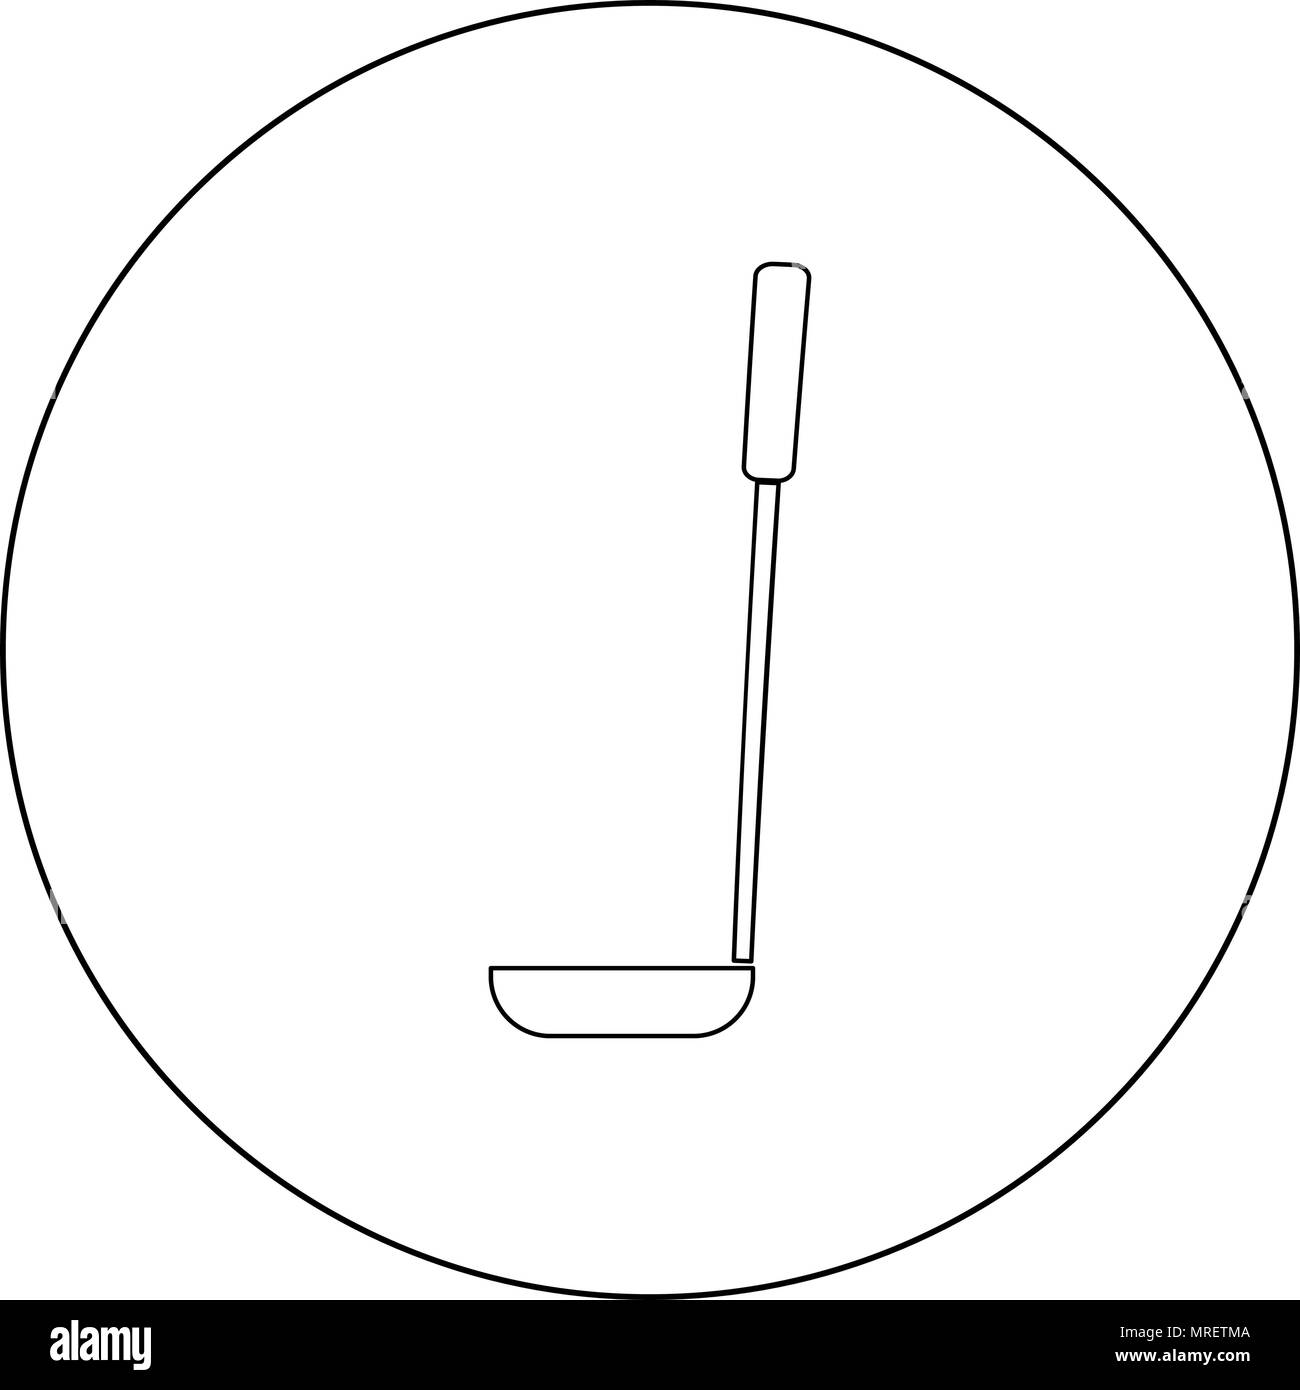 Soup ladle  icon black color in circle or round vector illustration - Stock Image